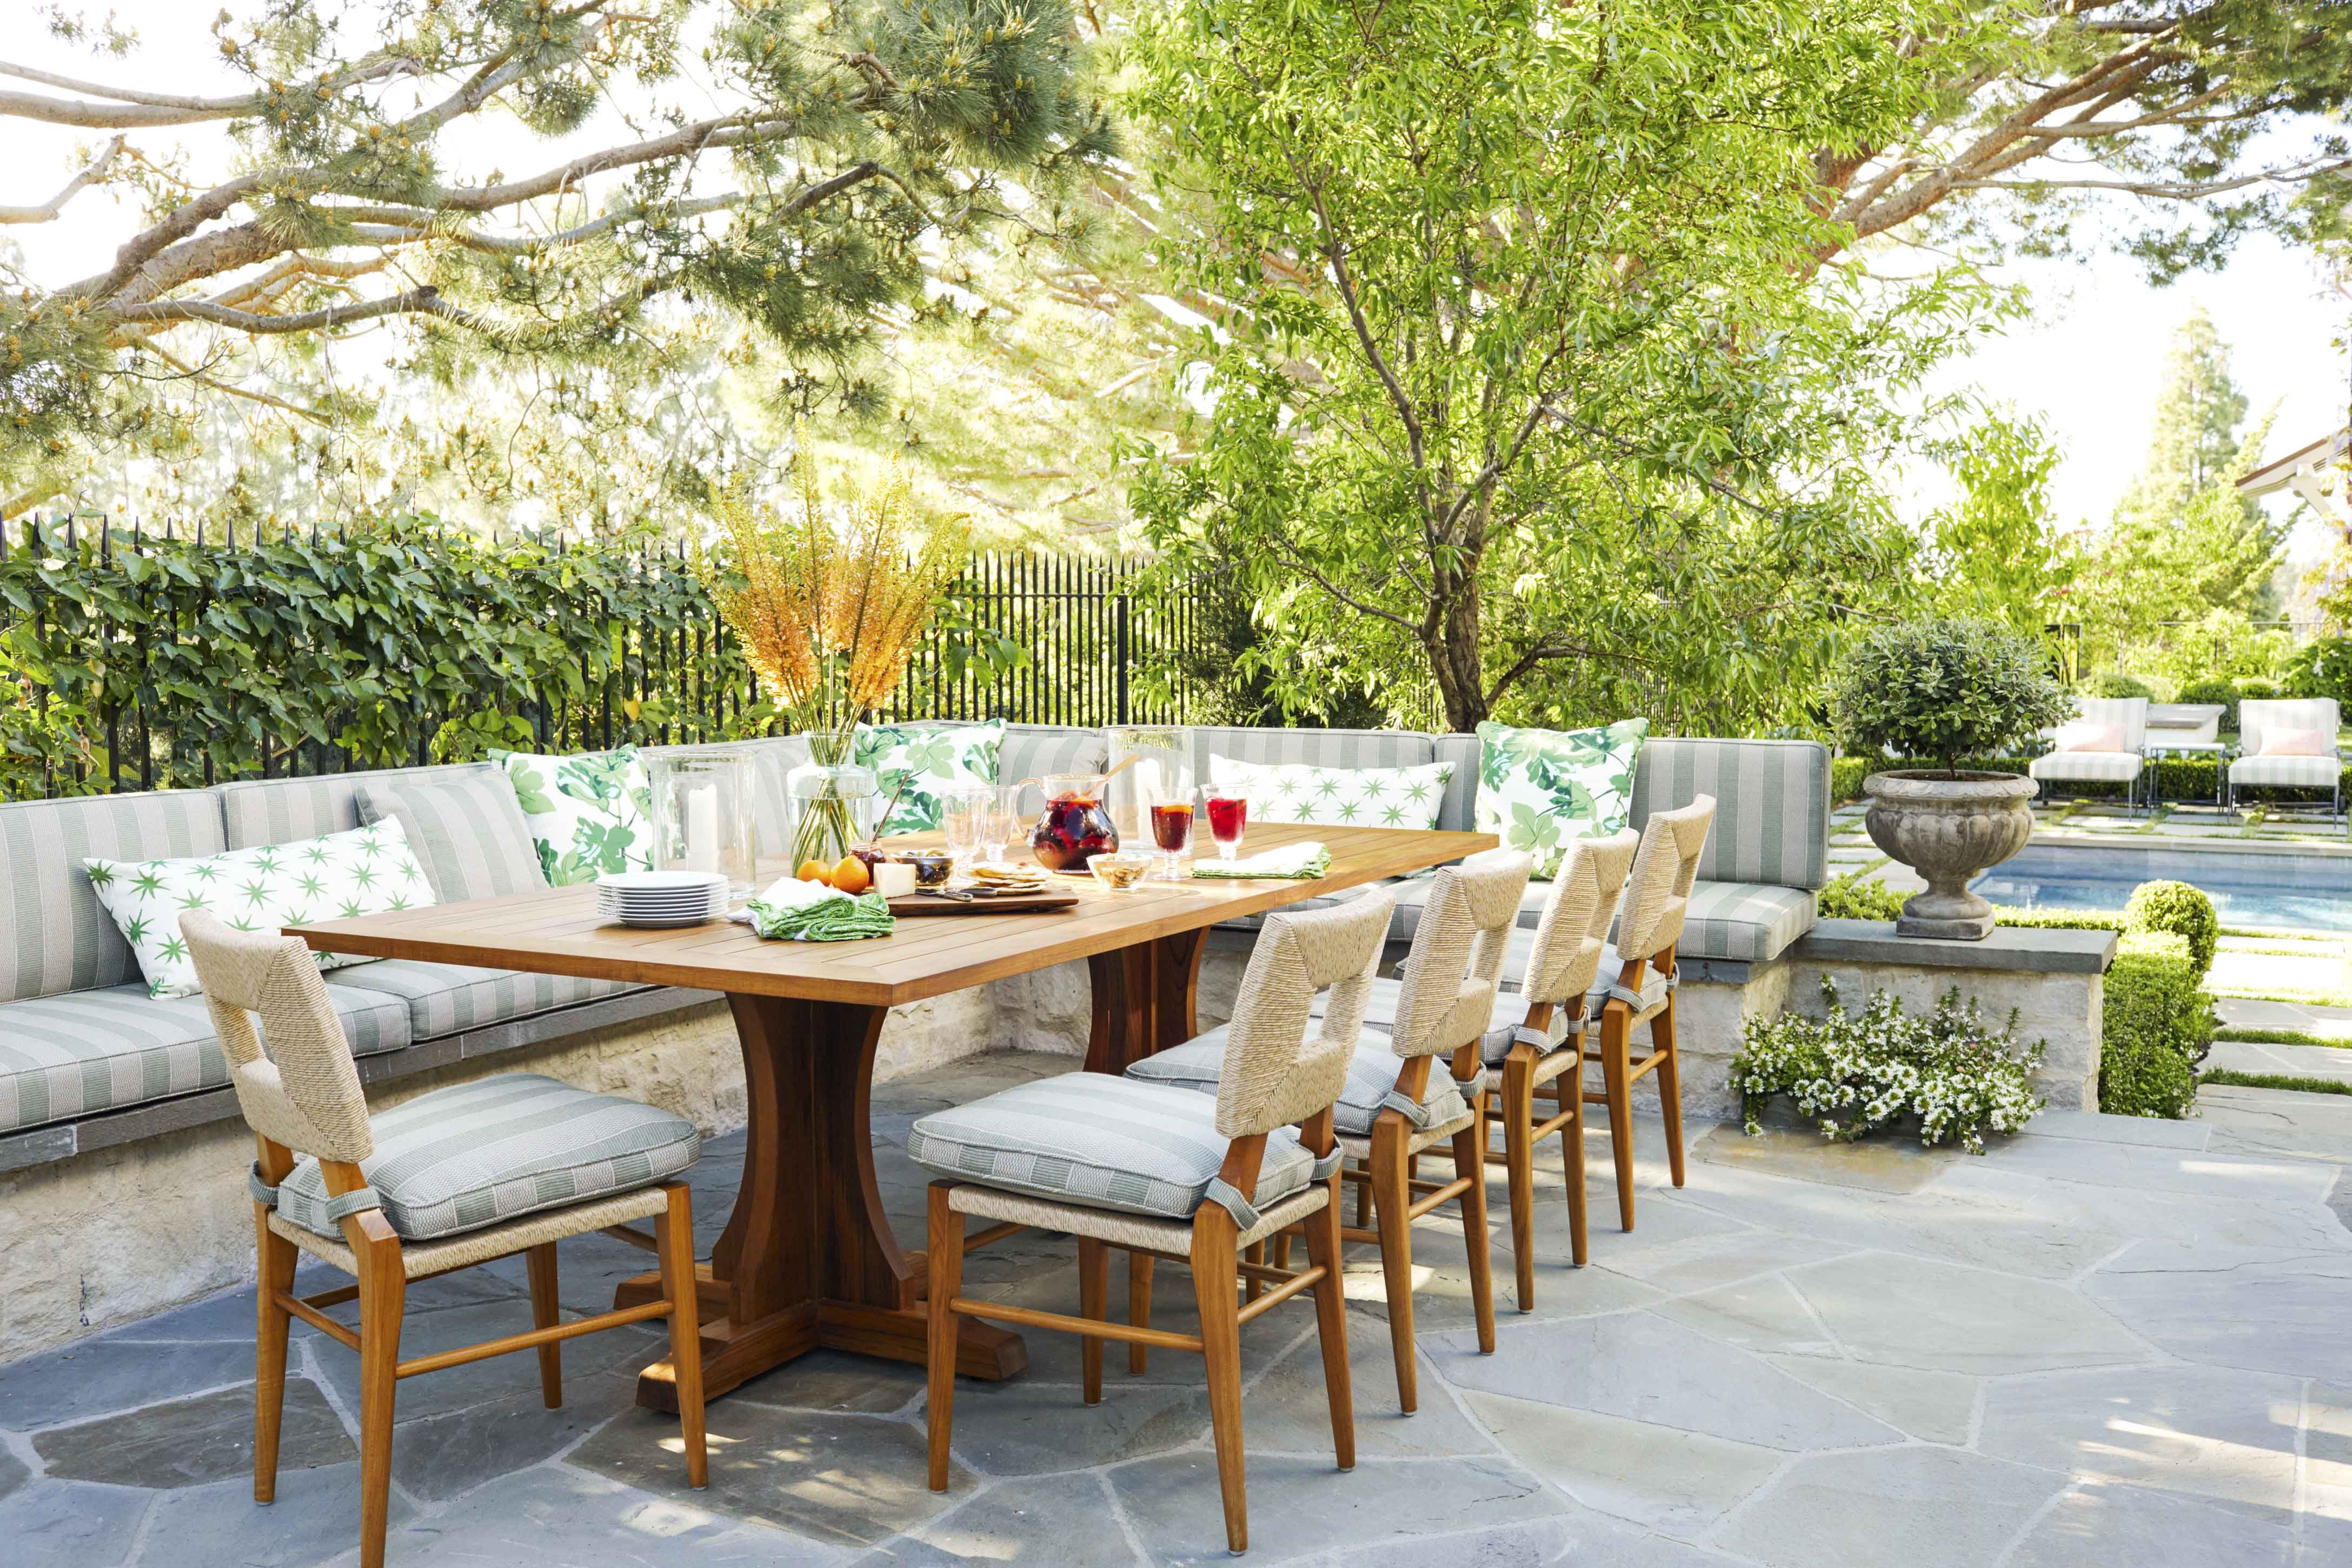 38 Patio Ideas For A Beautiful Backyard Designer Backyard Ideas